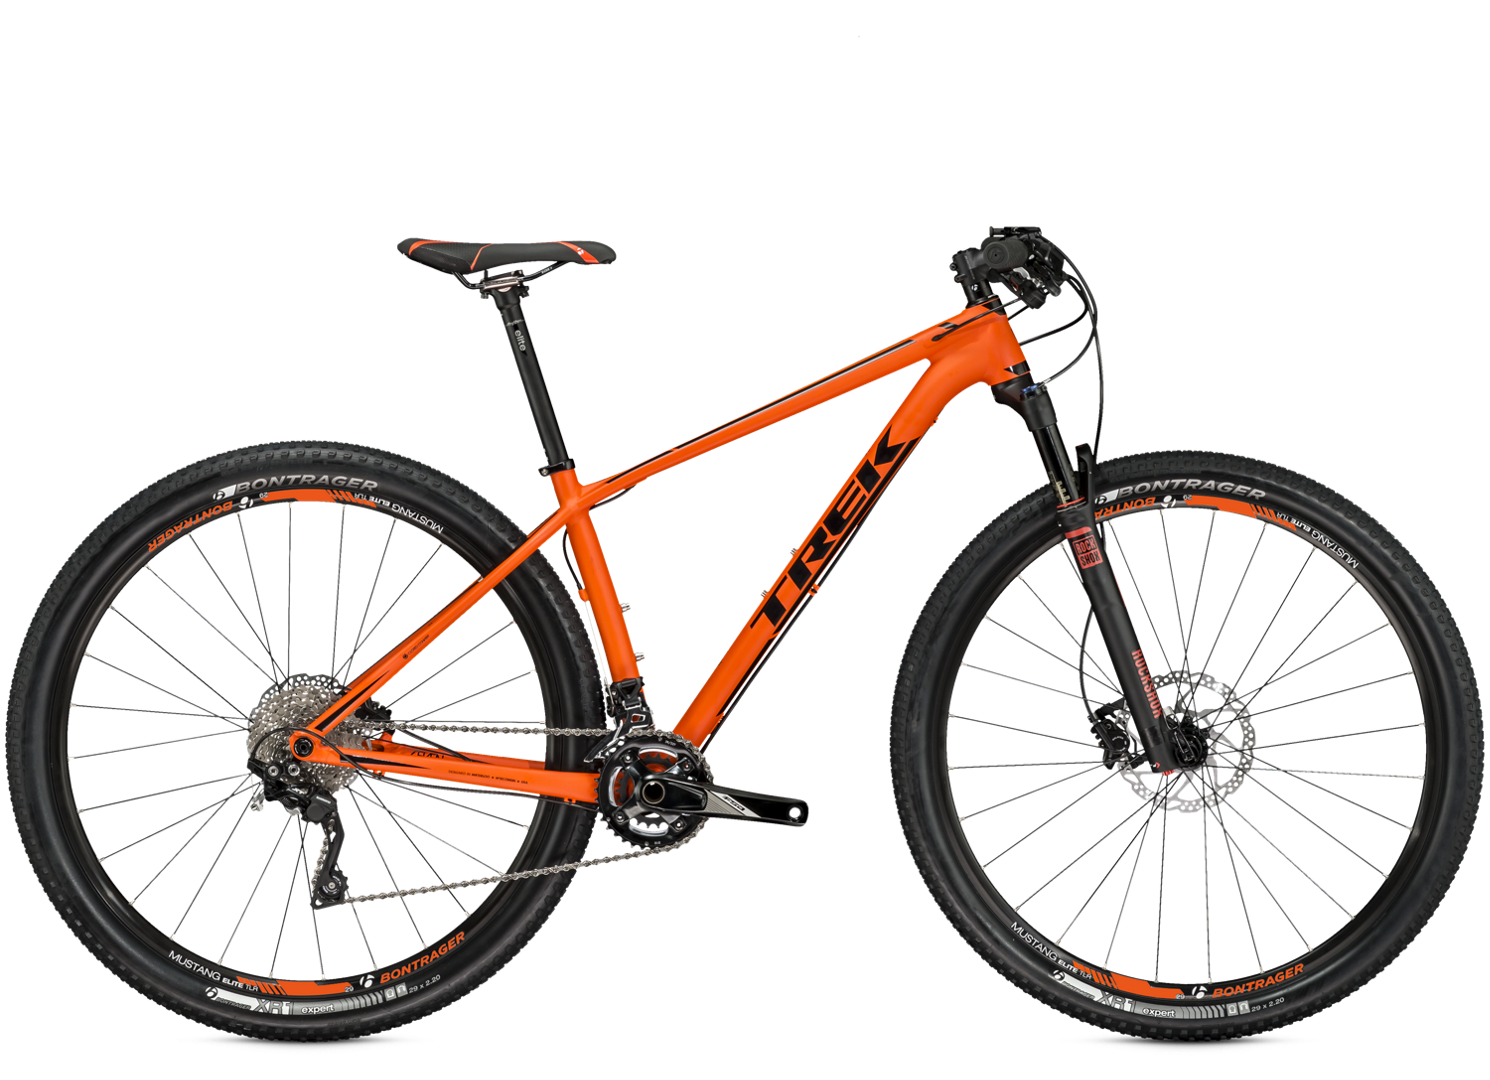 Superfly 7 Trek Bicycle